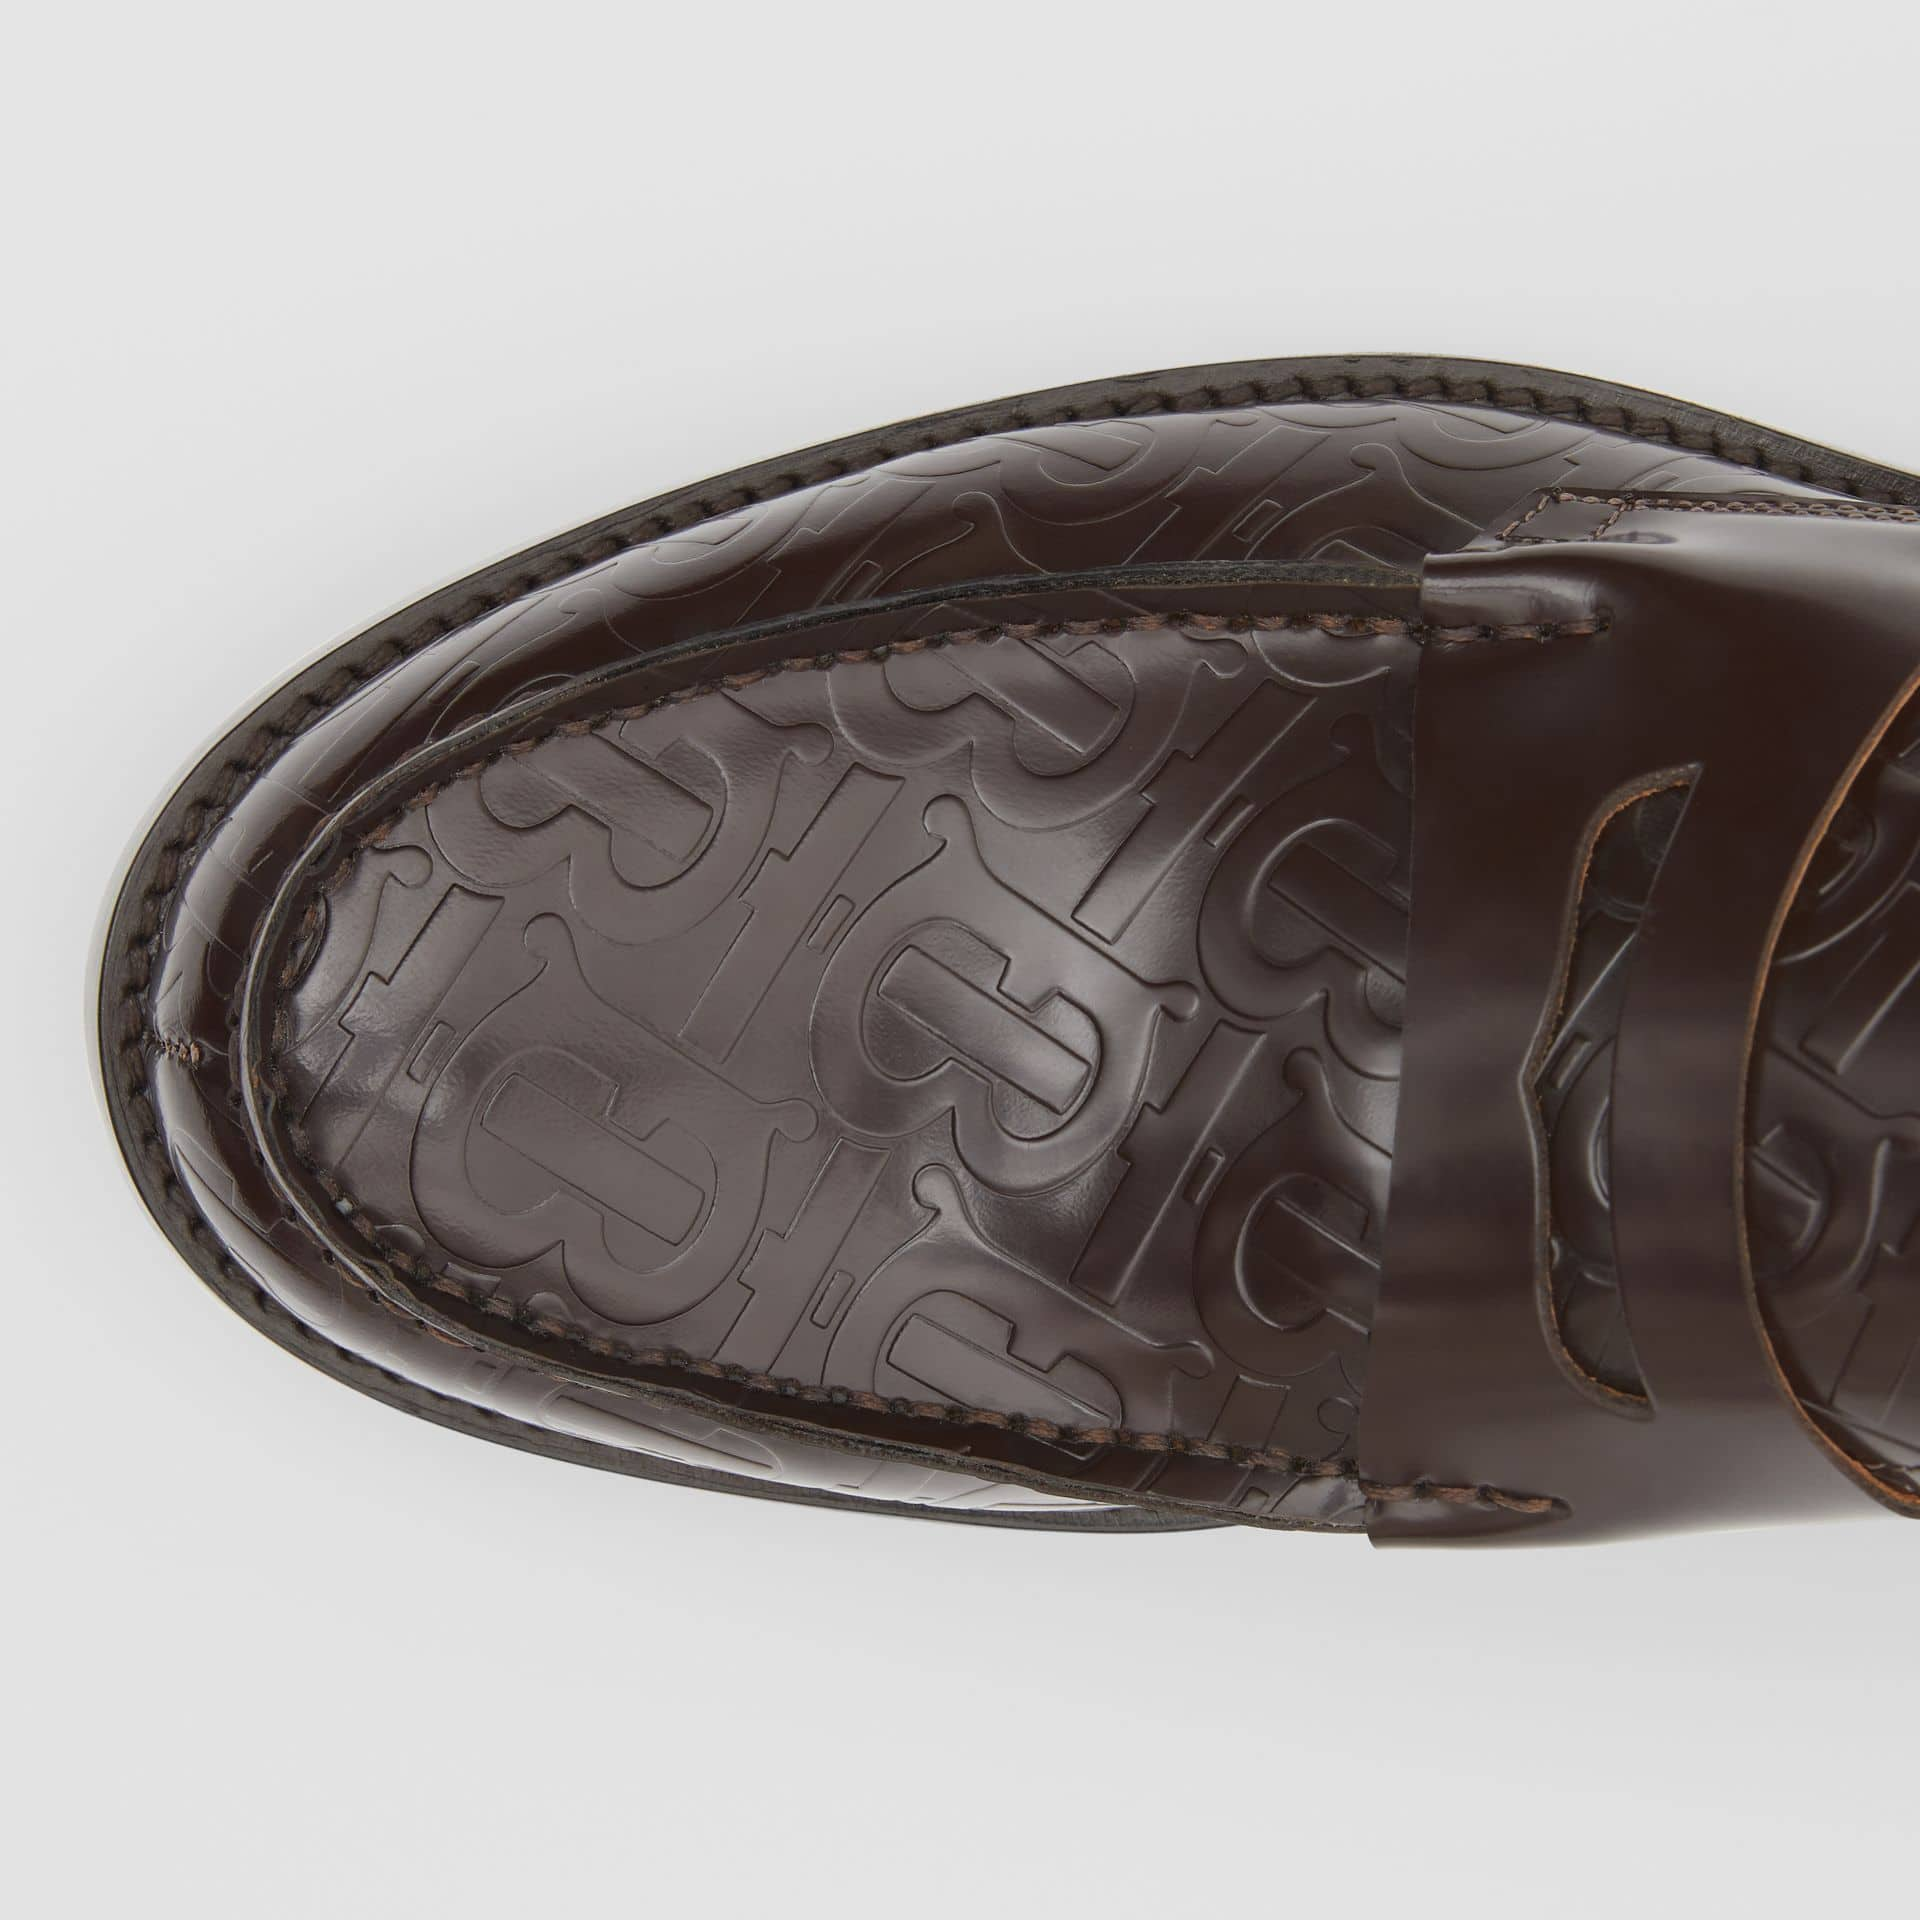 Burberry Monogram Leather Loafers $340